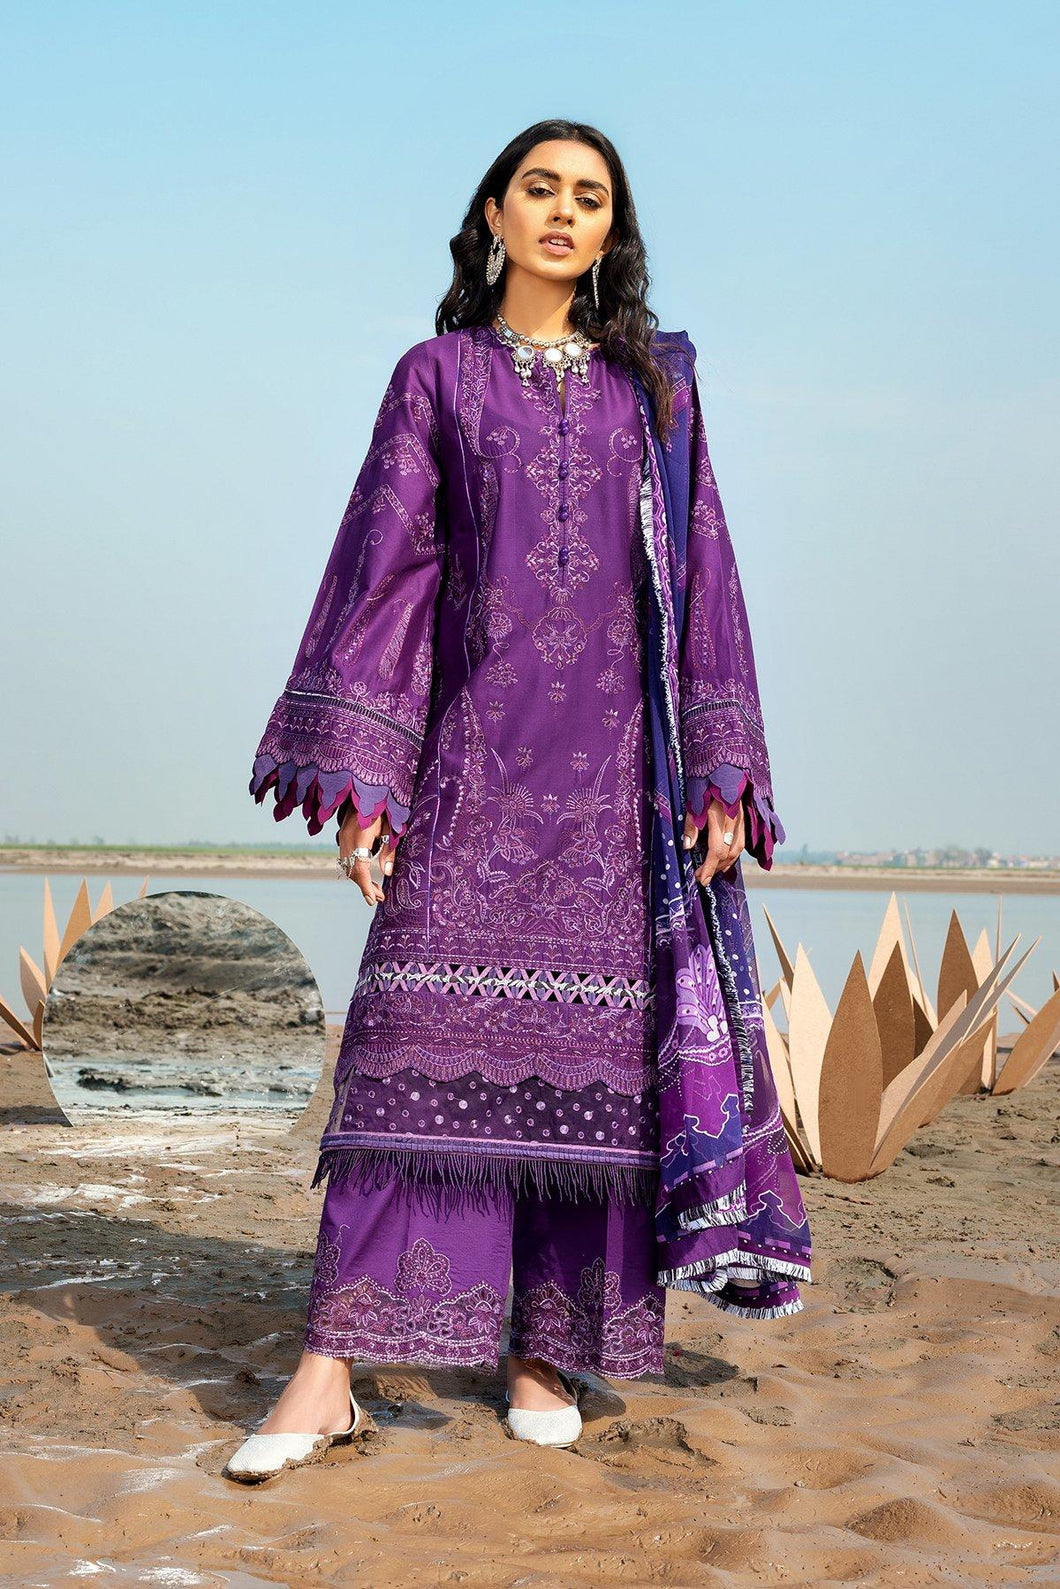 Buy Baroque Embroidered Summer Collection 2021 | Allium Purple Dress at exclusive price. Shop Pakistani designer clothes of BAROQUE LAWN, dress pak for Evening wear available at LEBAASONLINE on SALE prices Get the latest Pakistani dresses unstitched and ready to wear eid dresses in Austria, Spain, Birhamgam & UK!